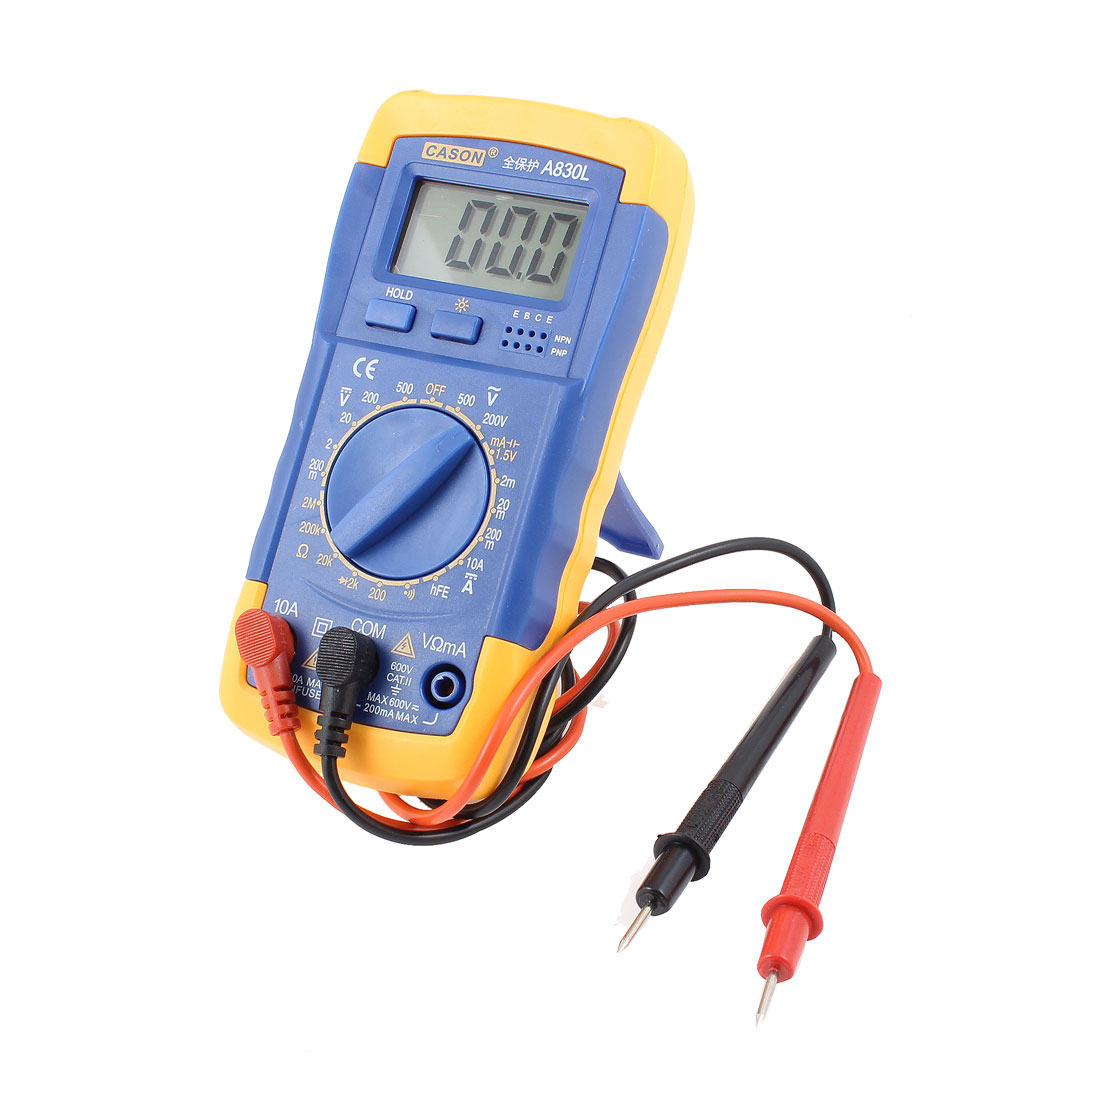 Plastic Shell Digital Multimeter Tester AC/DC Precision Multitester Tool